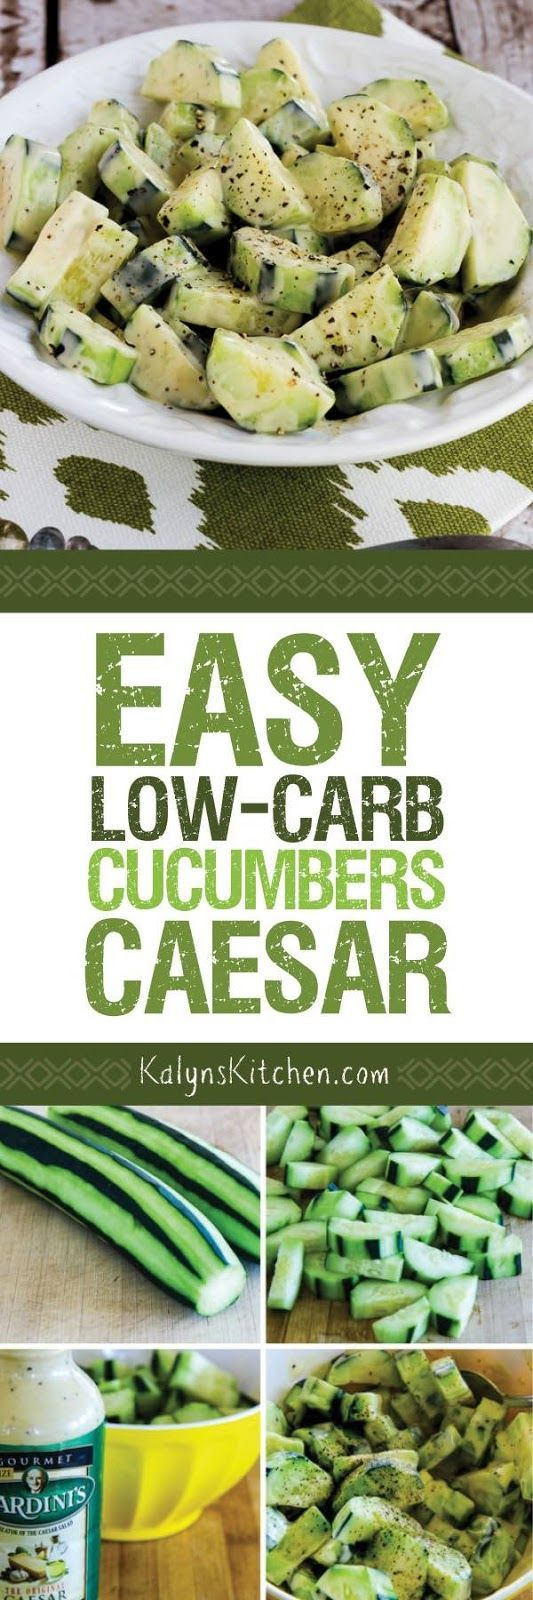 Easy Low-Carb Cucumbers Caesar is ridiculously easy, but when I used to cater houseboat trips, people went crazy over this salad. And it's low-carb, gluten-free, meatless, and South Beach Diet friendly! [found on KalynsKitchen.com]